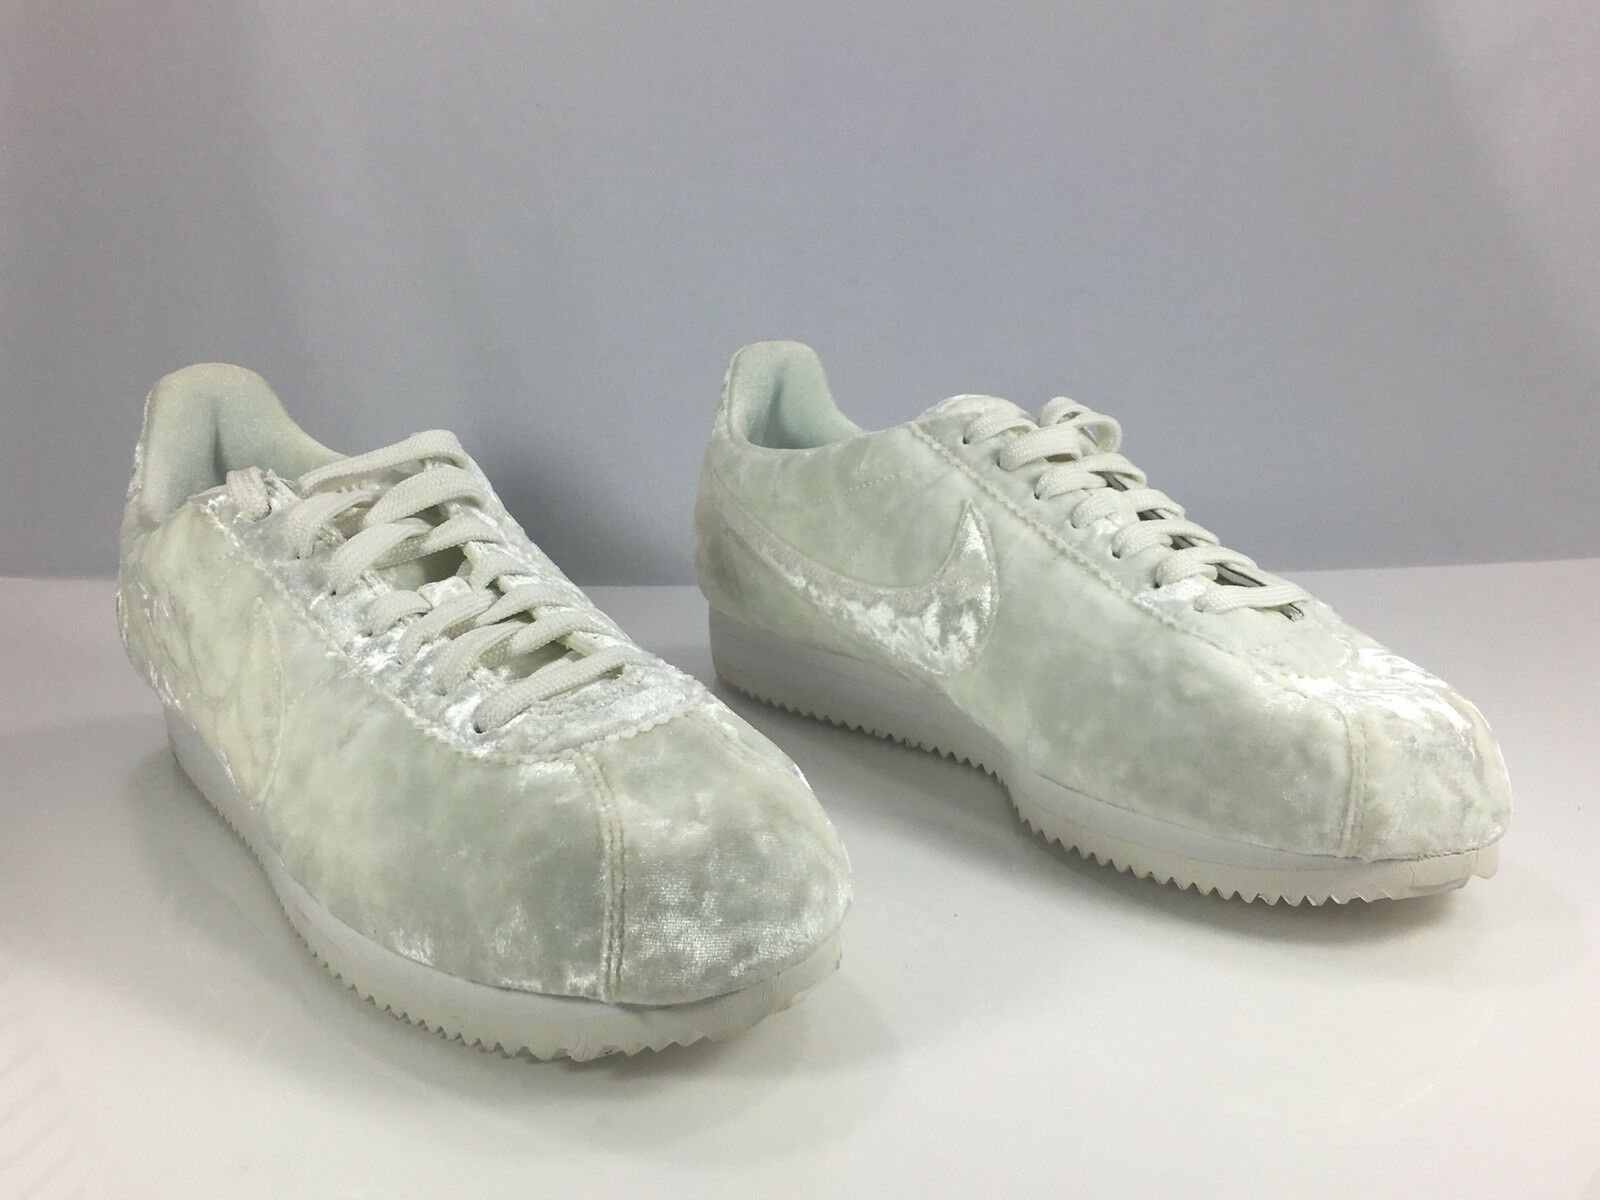 Nike Cortez Classic LX Velvet White Womens Comfortable Comfortable and good-looking